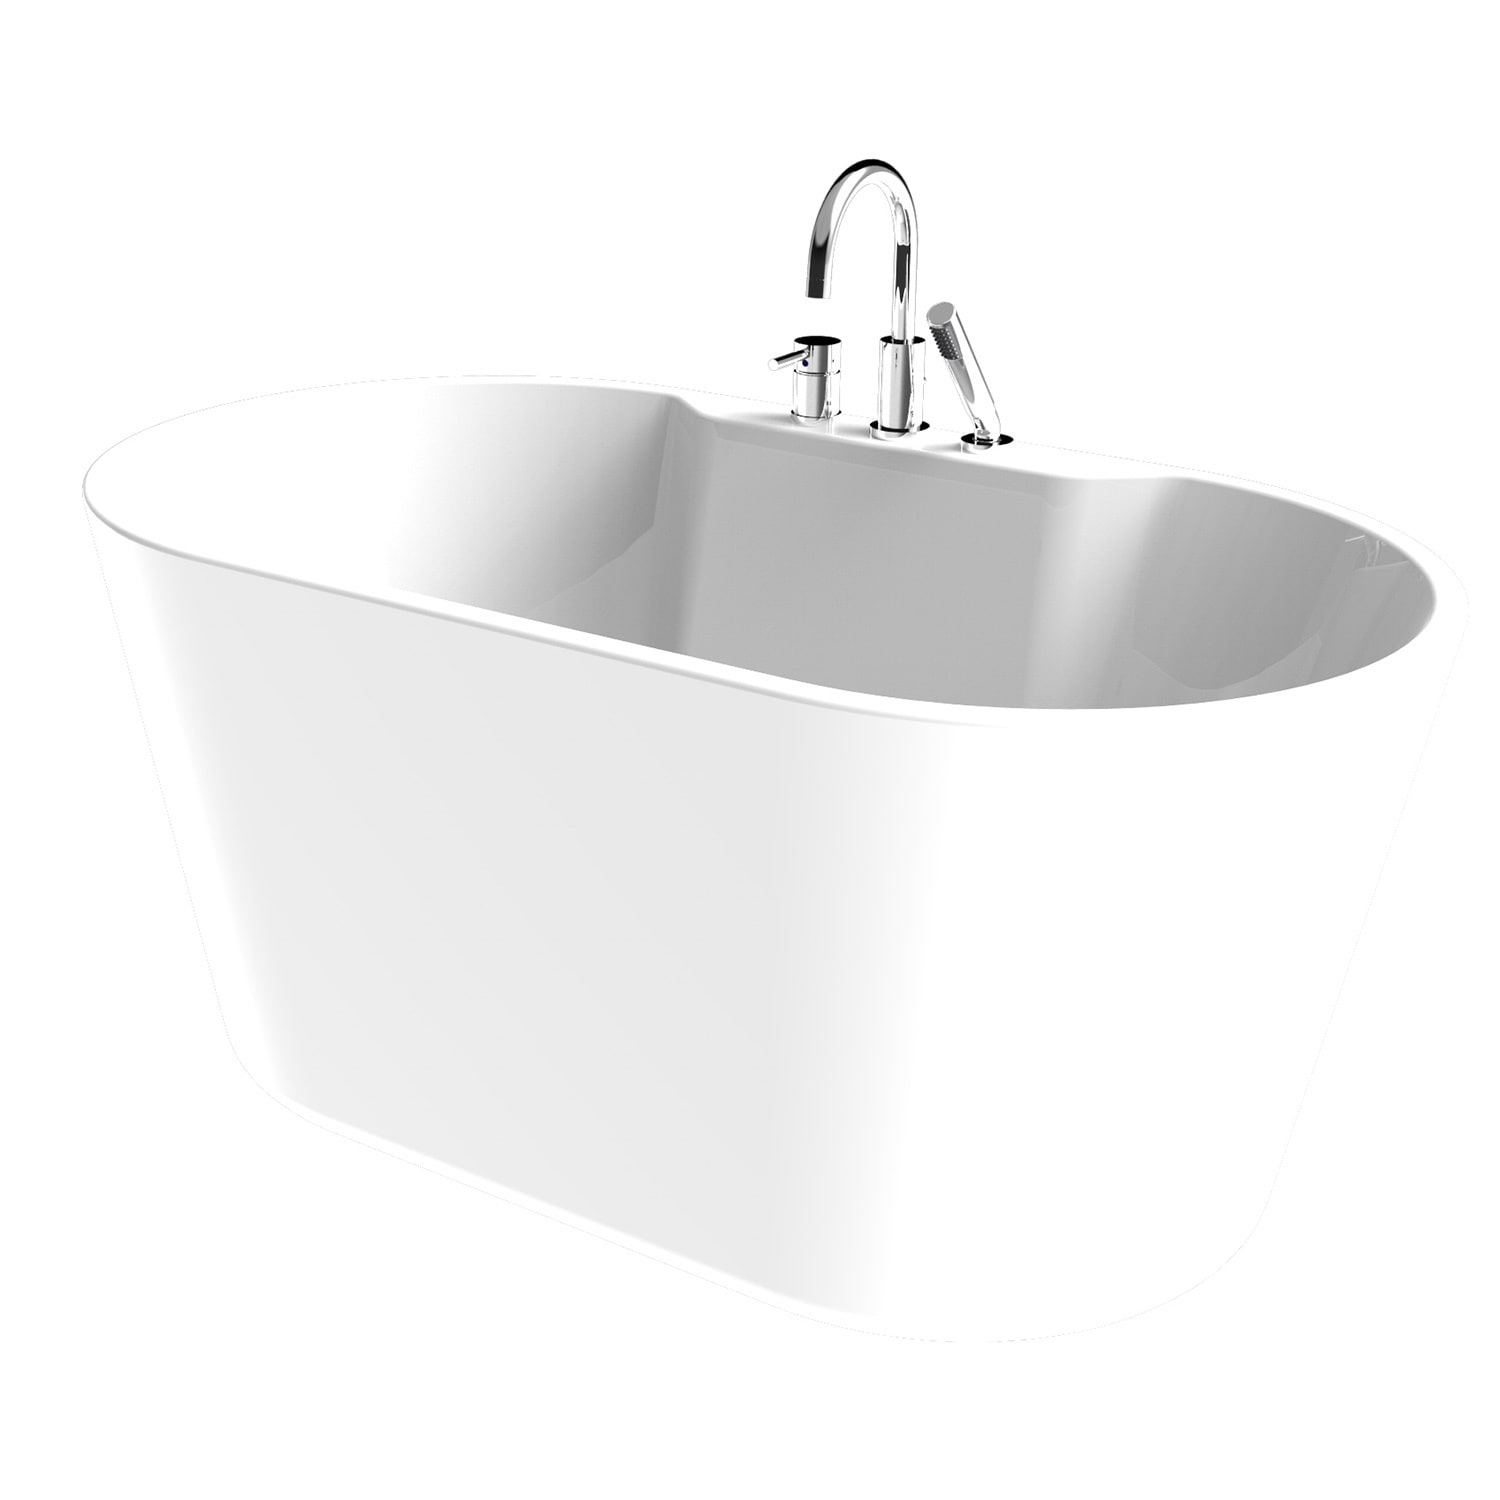 Shop Retro All-In-One Free-Standing Tub Combo - Free Shipping Today ...